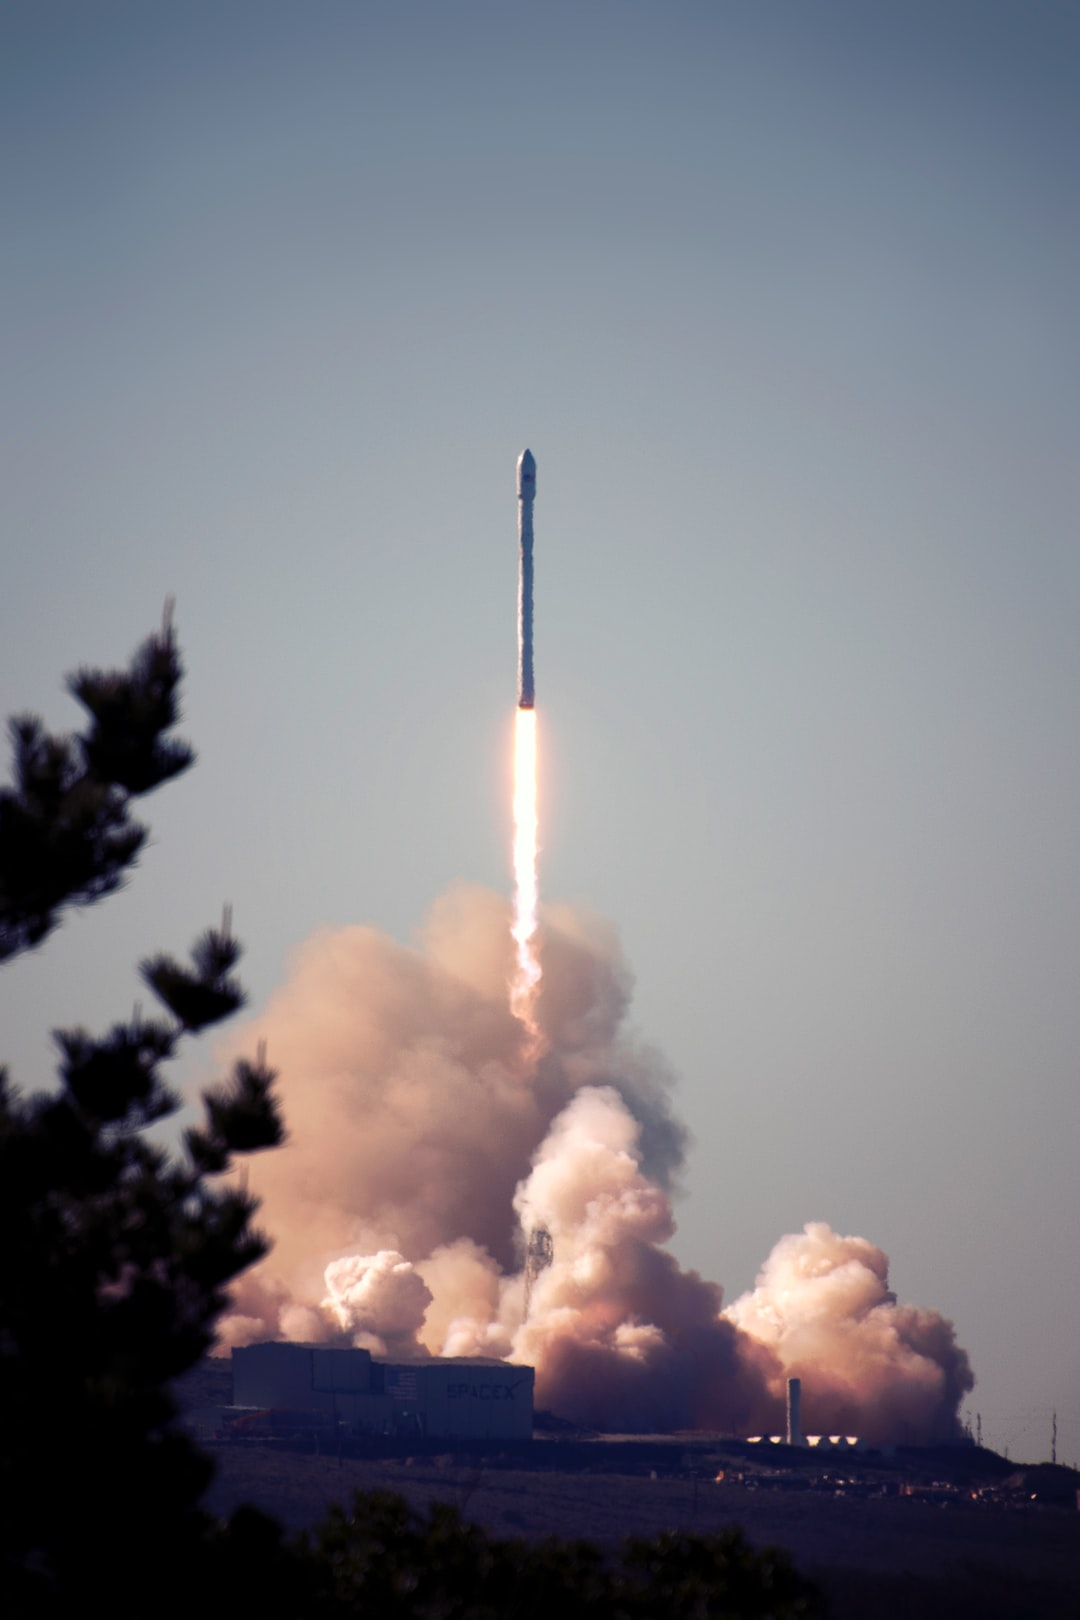 I was invited to Vandenberg Airforce Base on January 14, 2017, to see my first rocket launch. Super cool…and loud! SpaceX successfully launched a Falcon 9 rocket with a payload of 10 communication satellites.